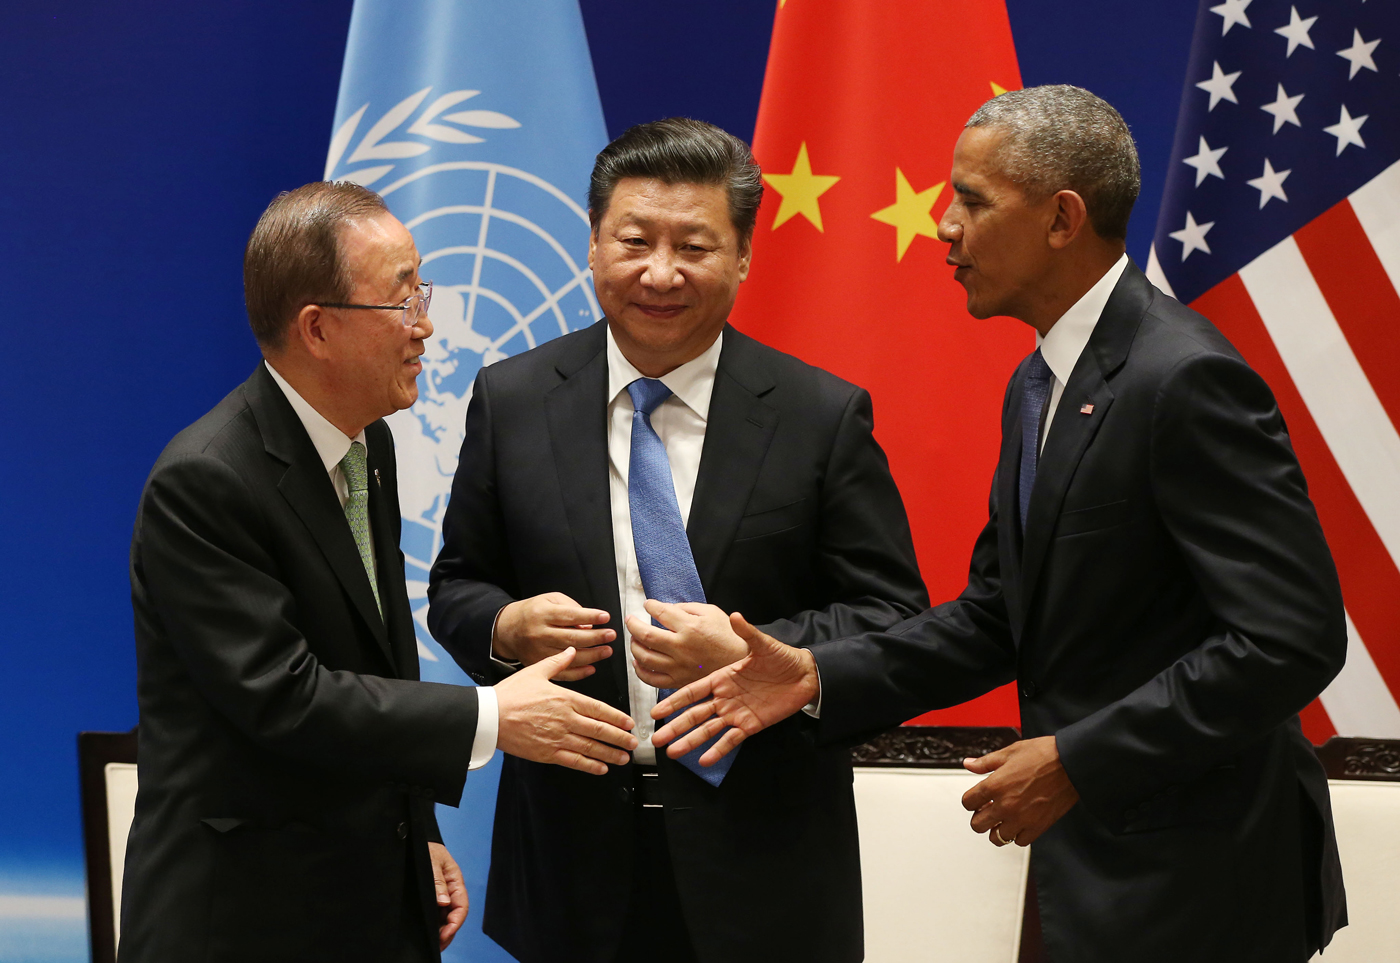 U.N. Secretary General Ban Ki-moon, Chinese President Xi Jinping, and U.S. President Barack Obama shake hands after China and the U.S. signed on to the Paris climate agreement in September 2016.